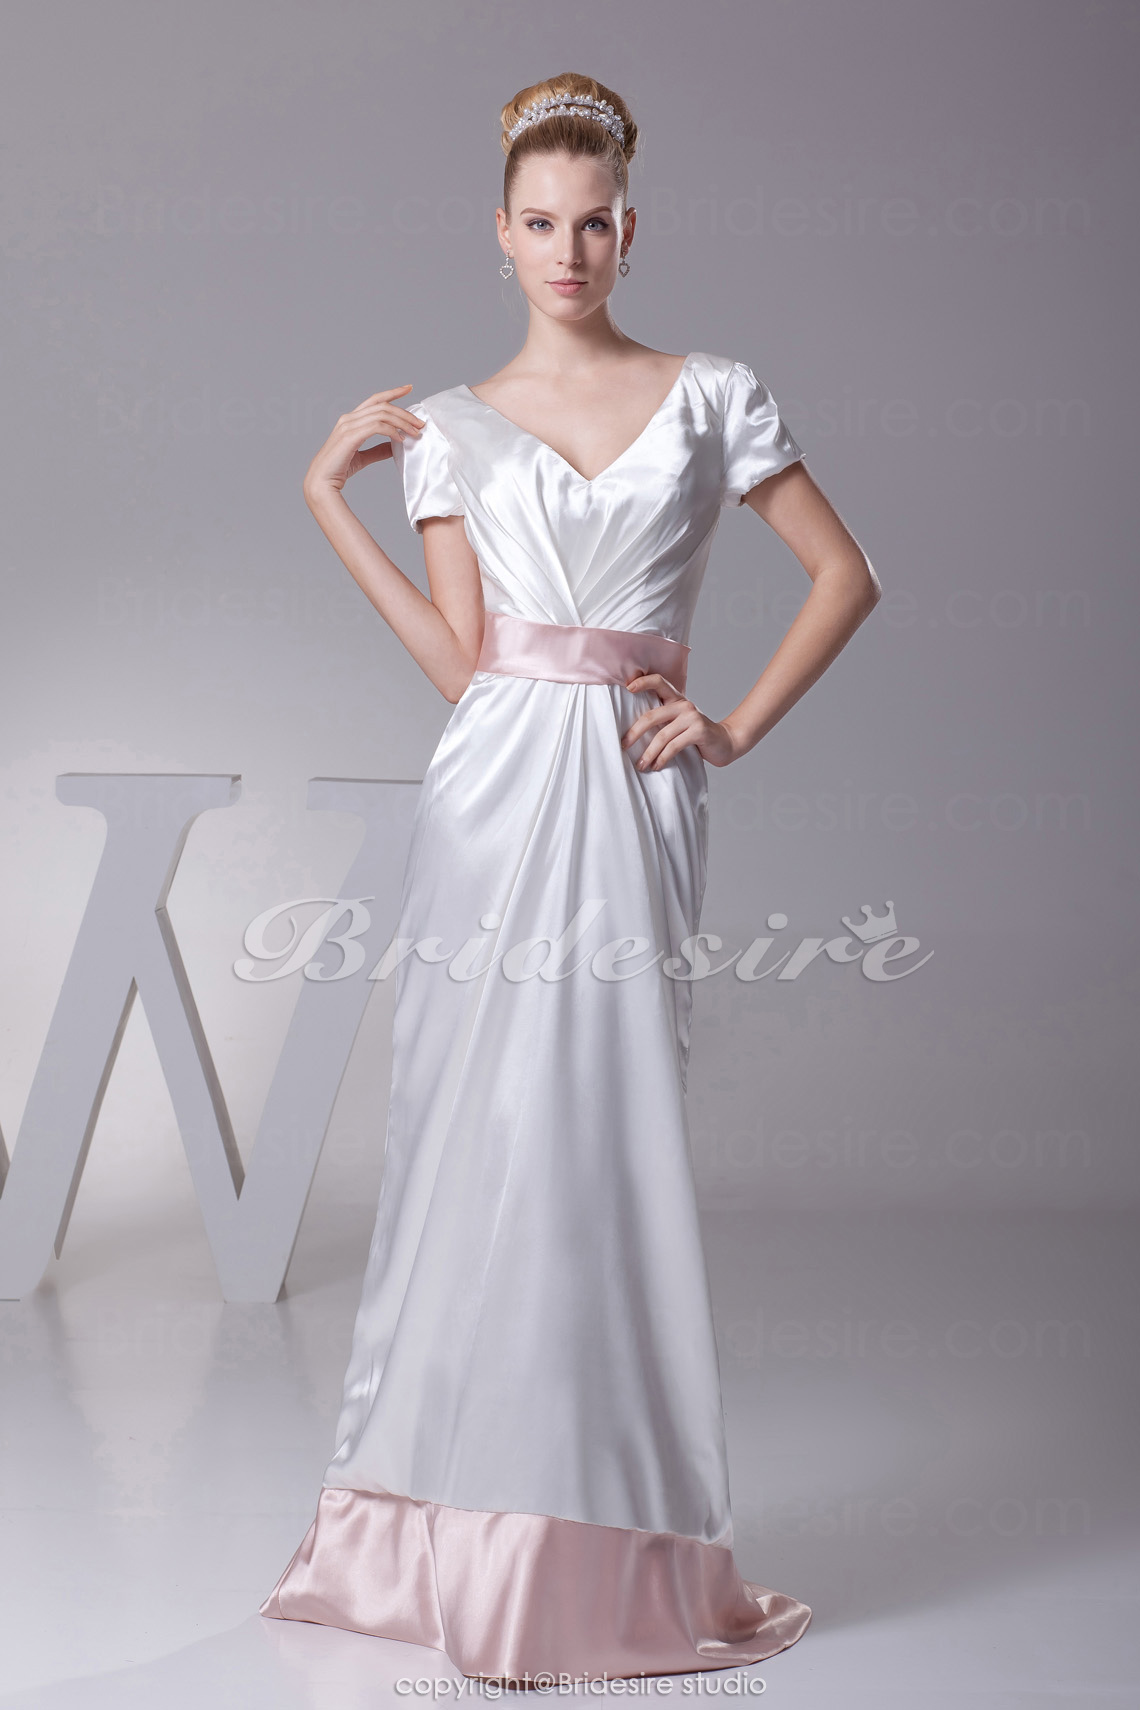 Sheath/Column V-neck Sweep/Brush Train Short Sleeve Stretch Satin Dress